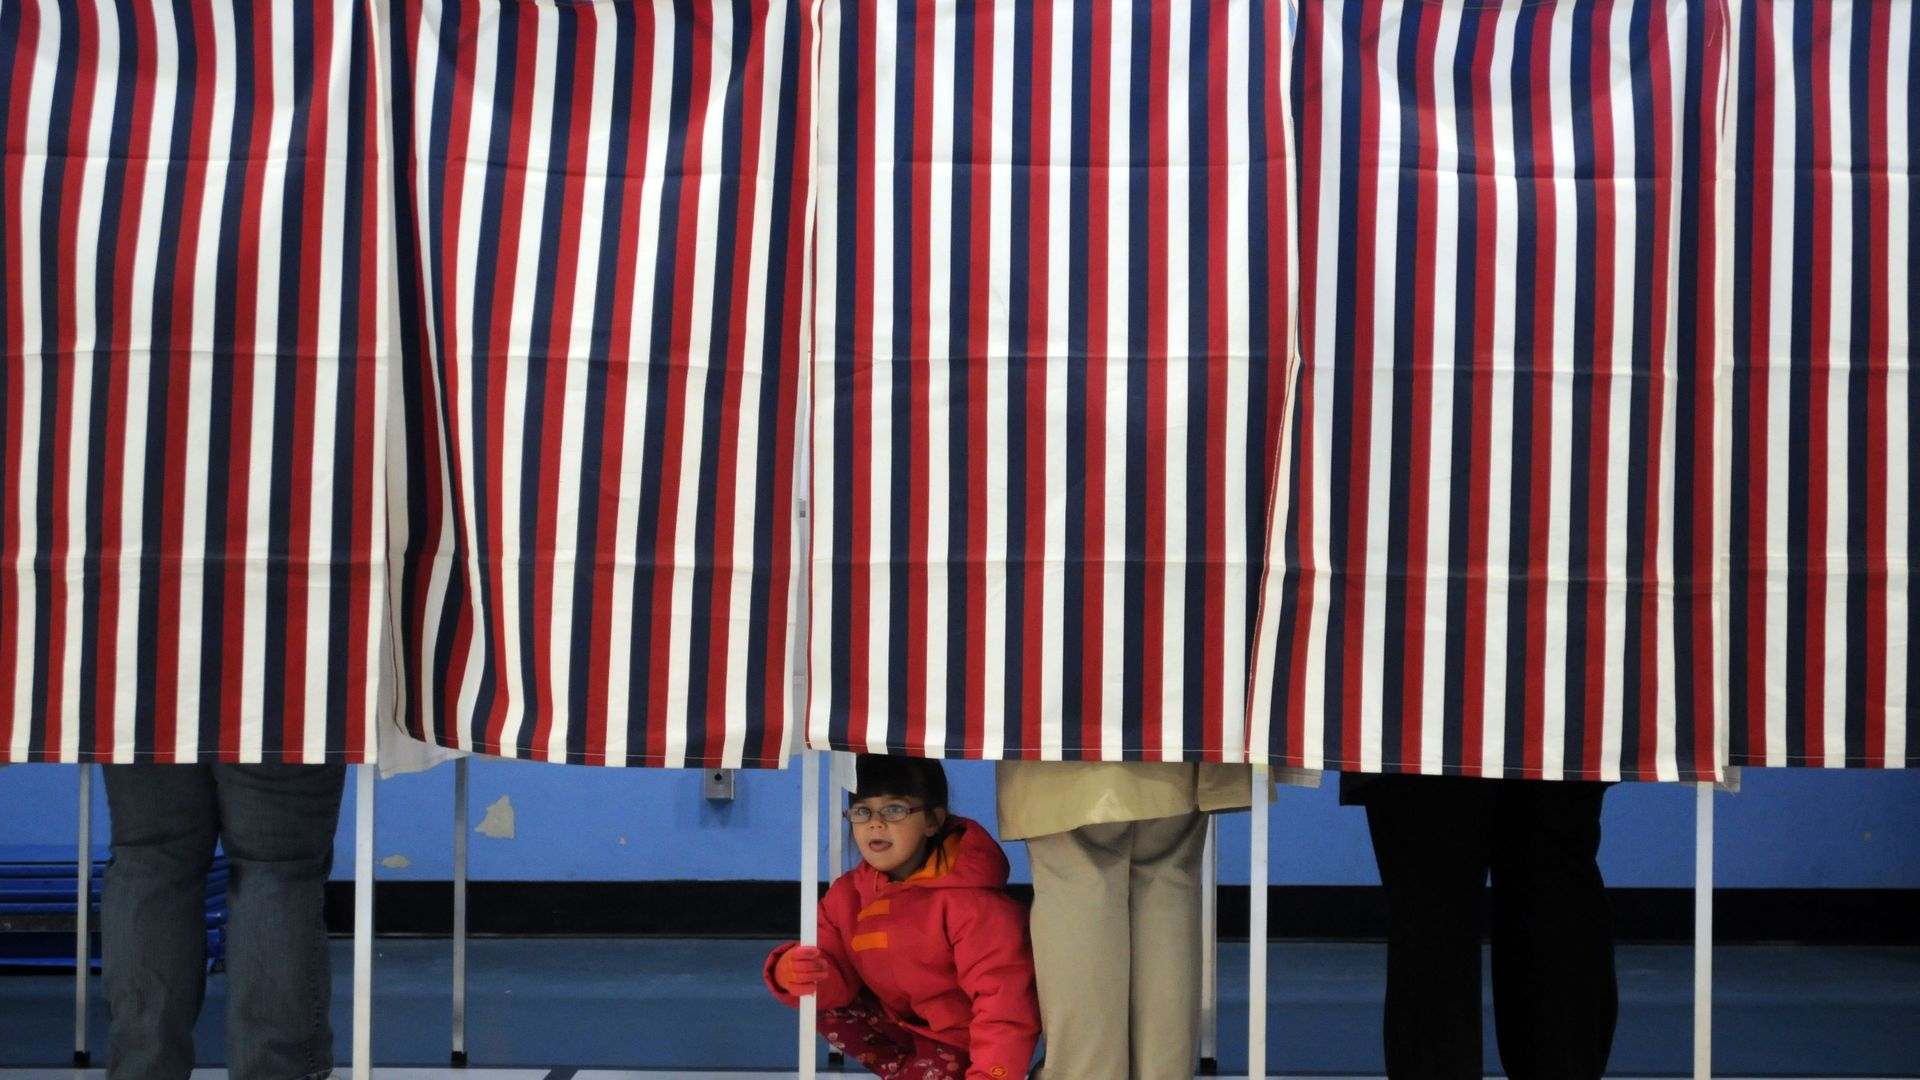 Poll booths with red, white, and blue curtains, while people vote.